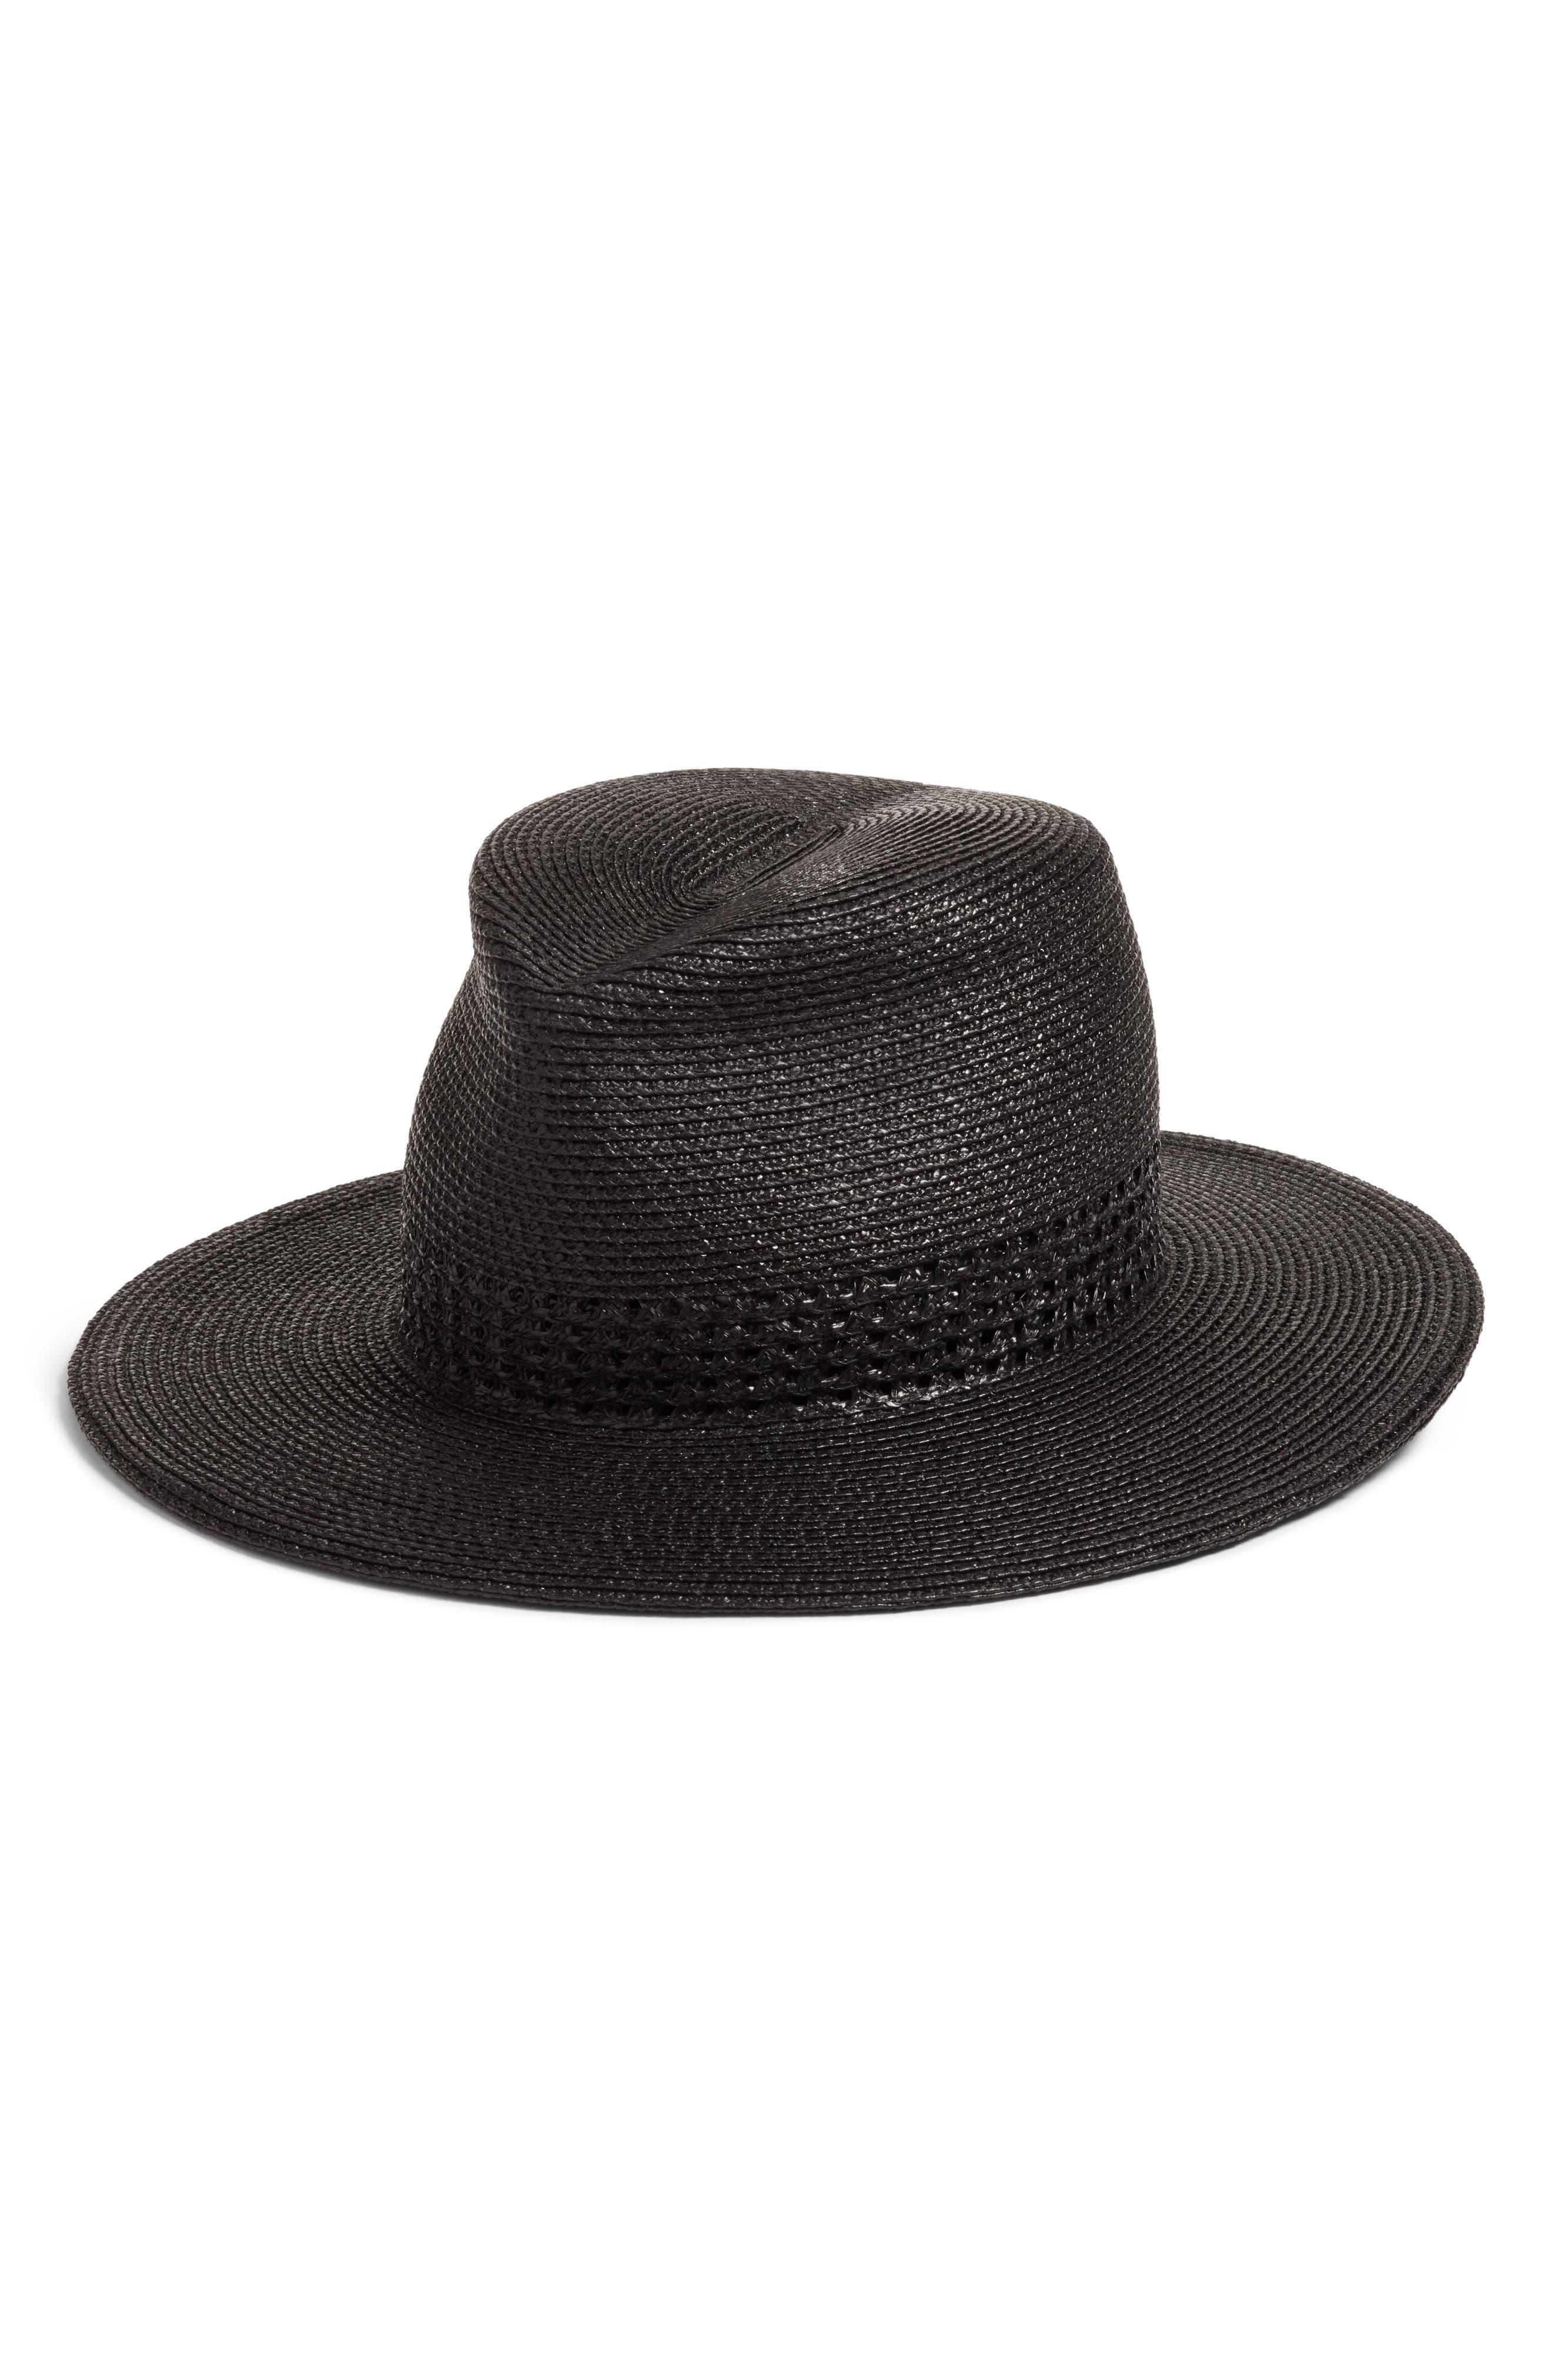 Bayou Packable Squishee<sup>®</sup> Fedora,                         Main,                         color, Black